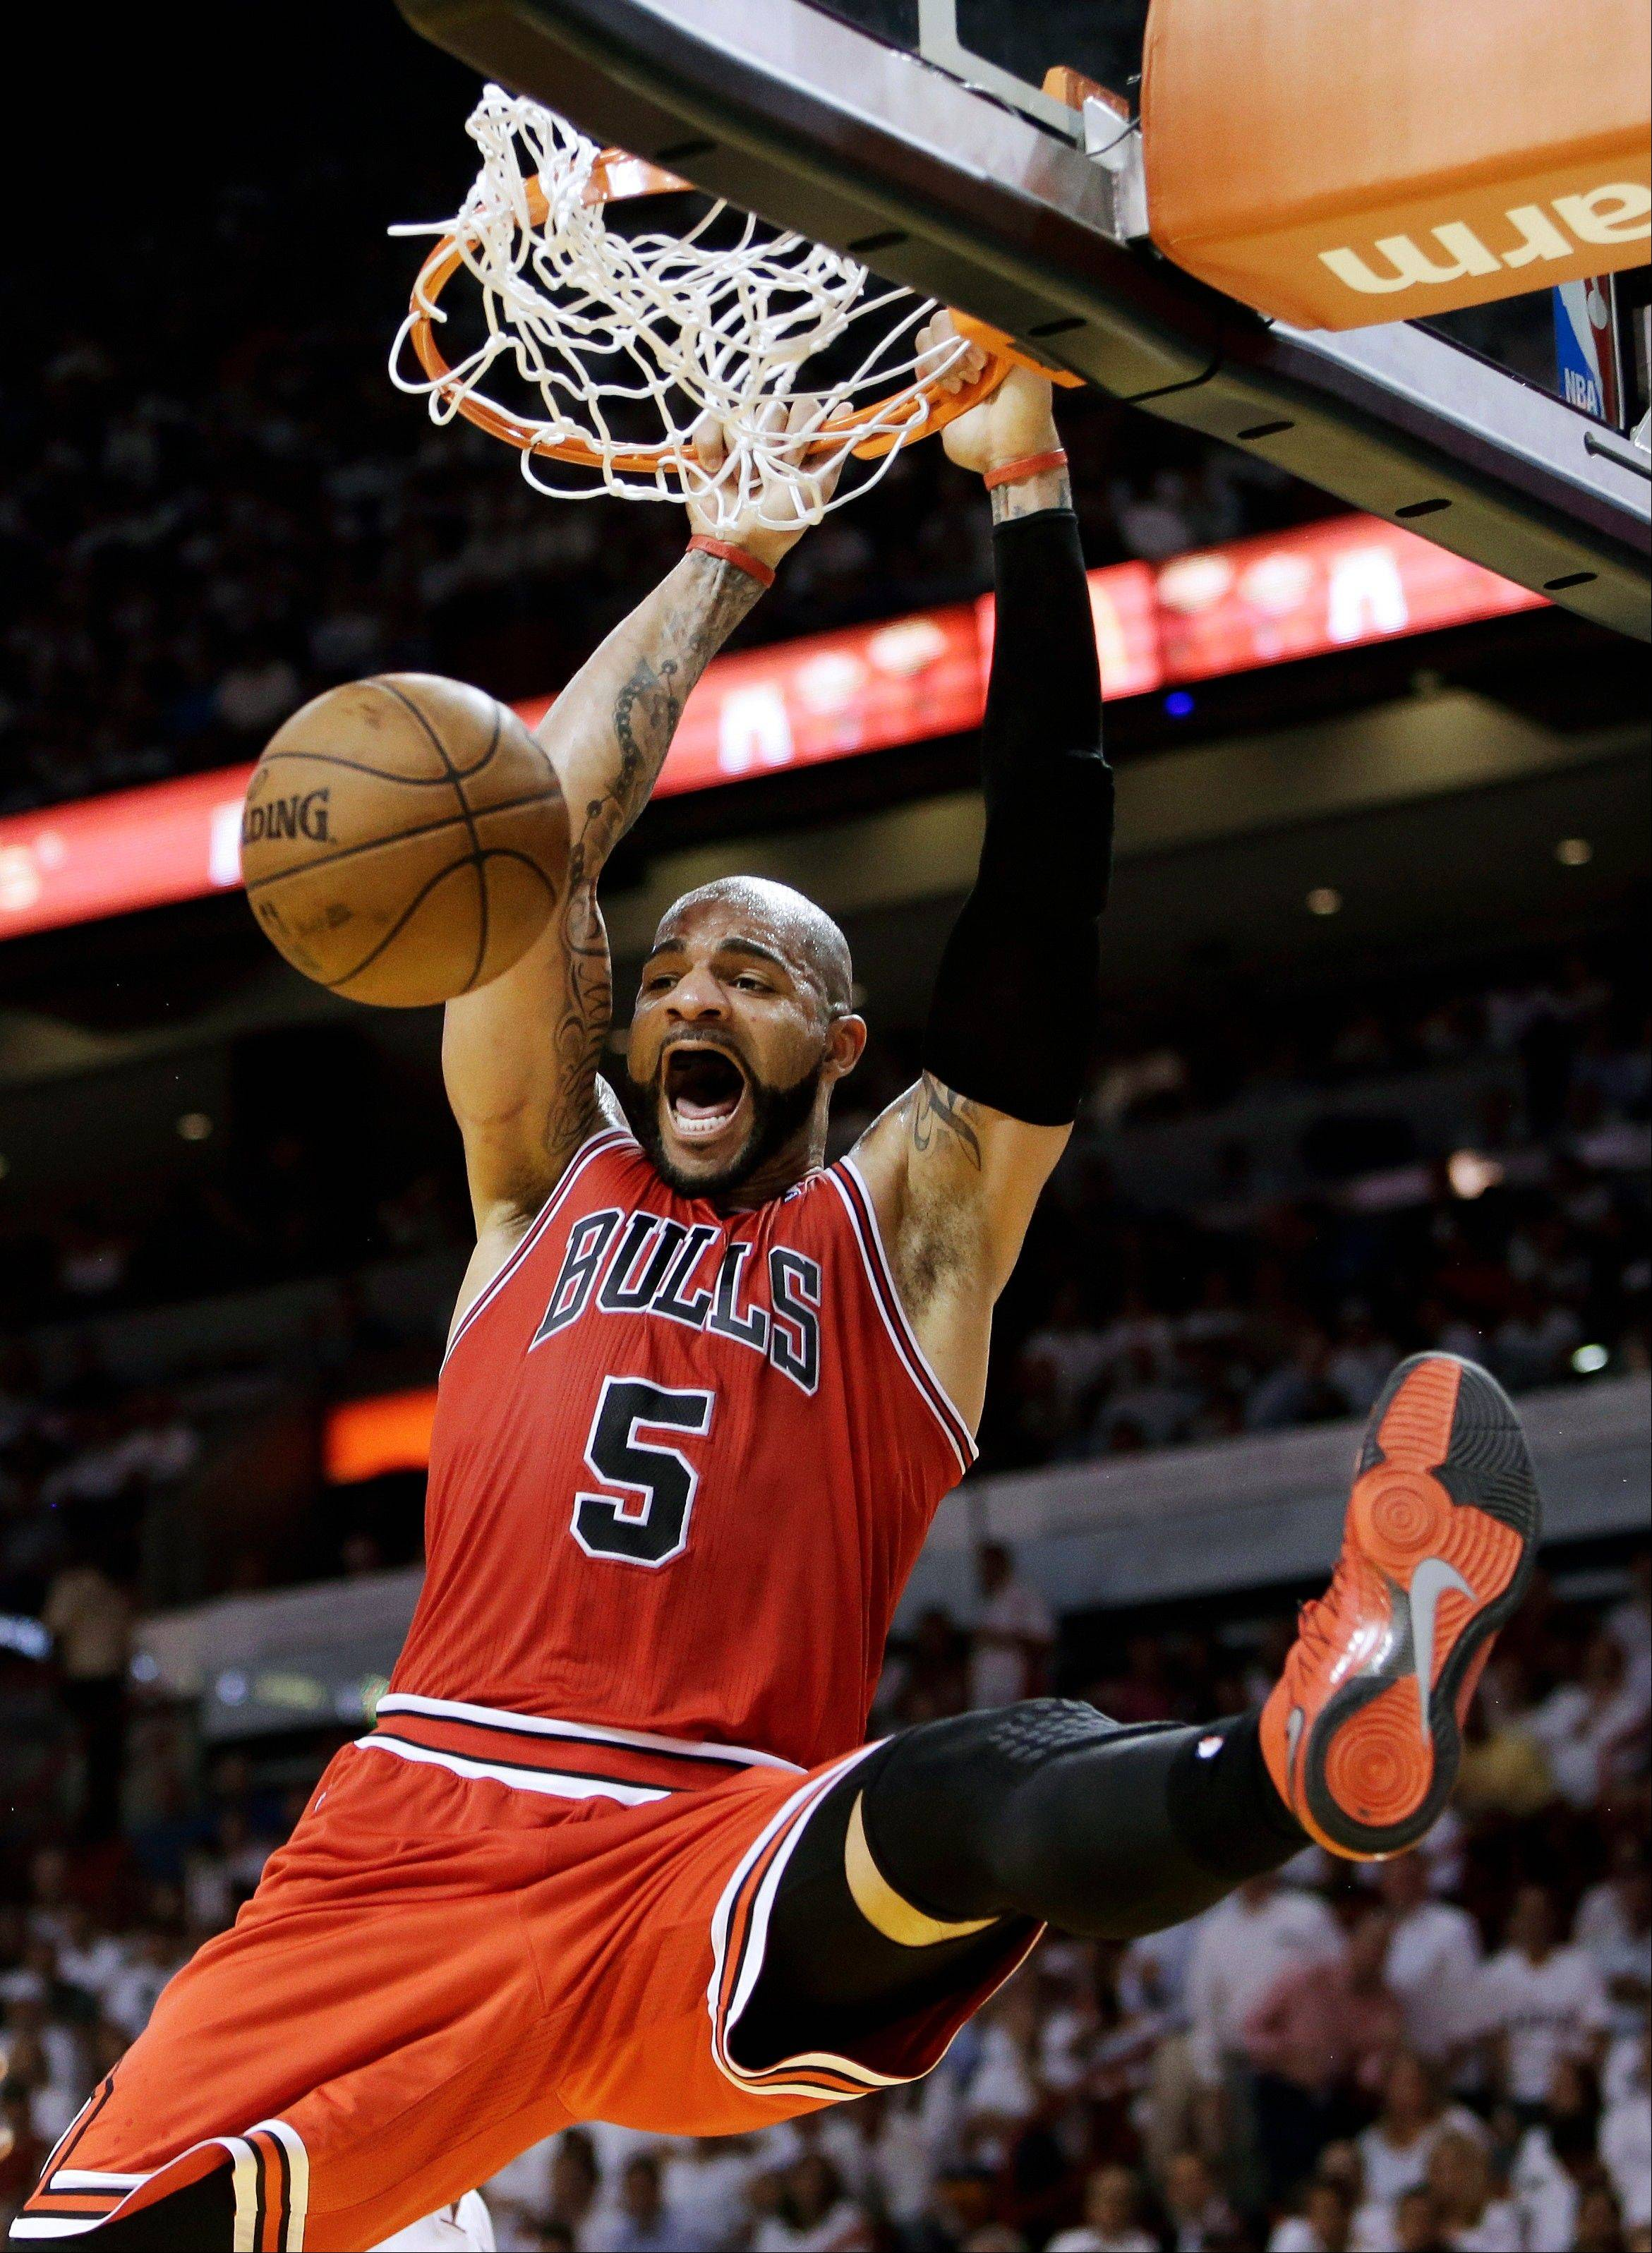 Bulls forward Carlos Boozer dunks during Monday's second half.